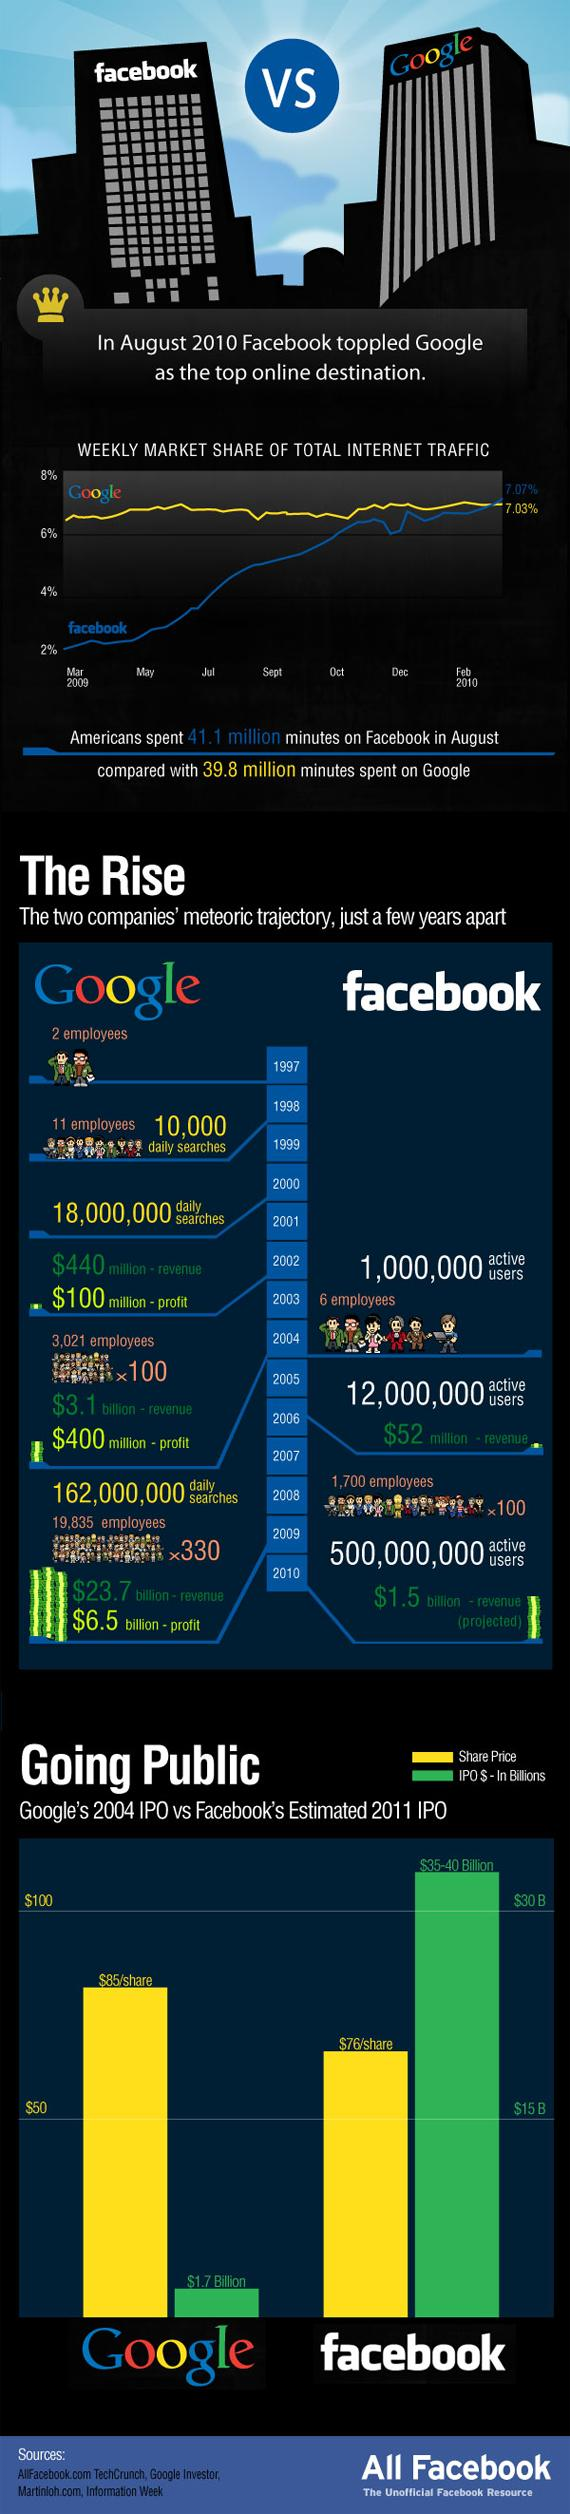 google vs facebook Get Ready: Fight!! As grandes brigas da internet em 20 infogrficos